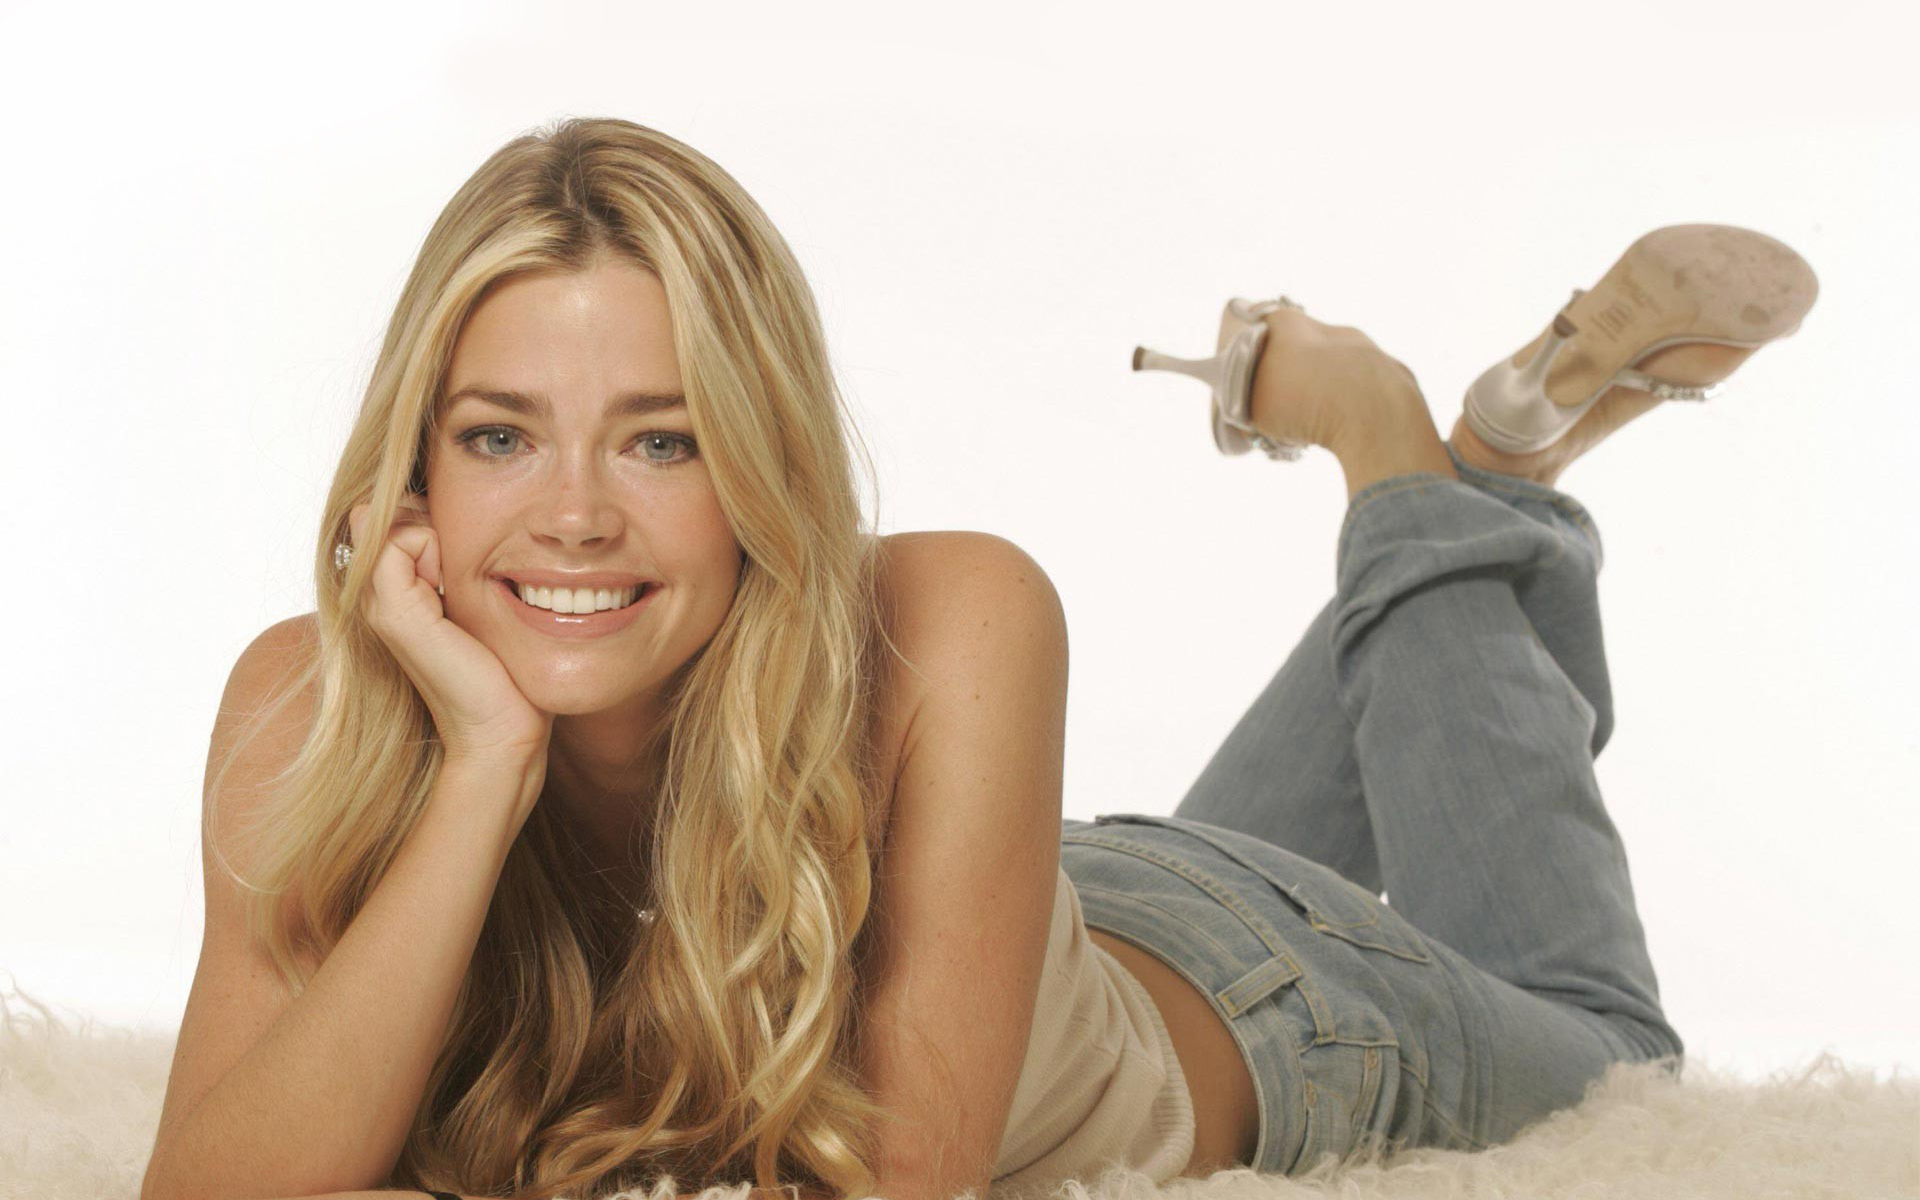 denise richards 1920x1200 wallpapers - photo #23